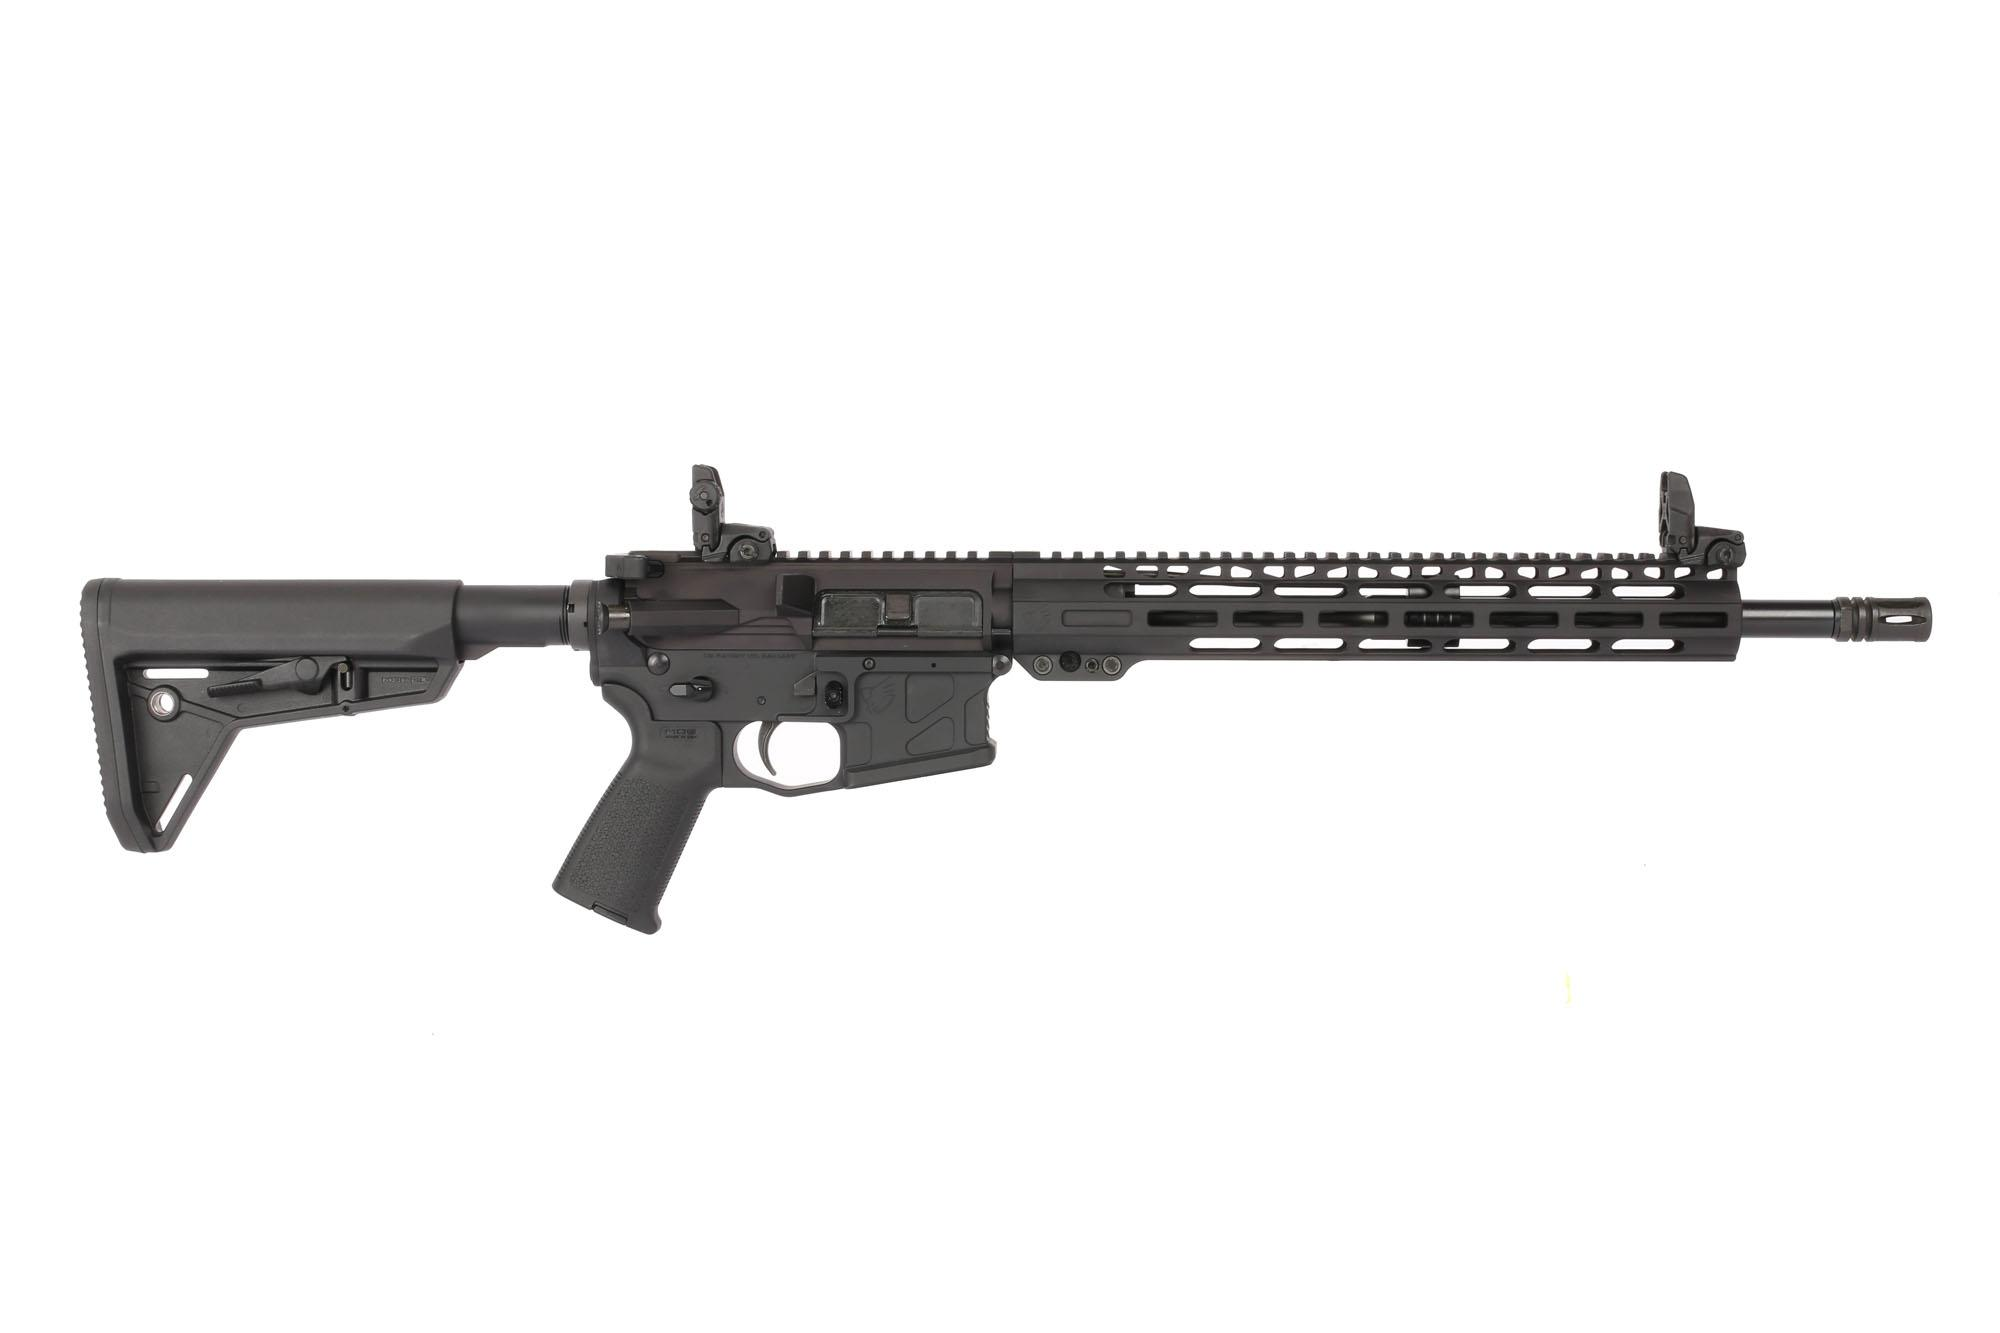 American Defense 16in UIC Mod 1 LE AR-15 Rifle